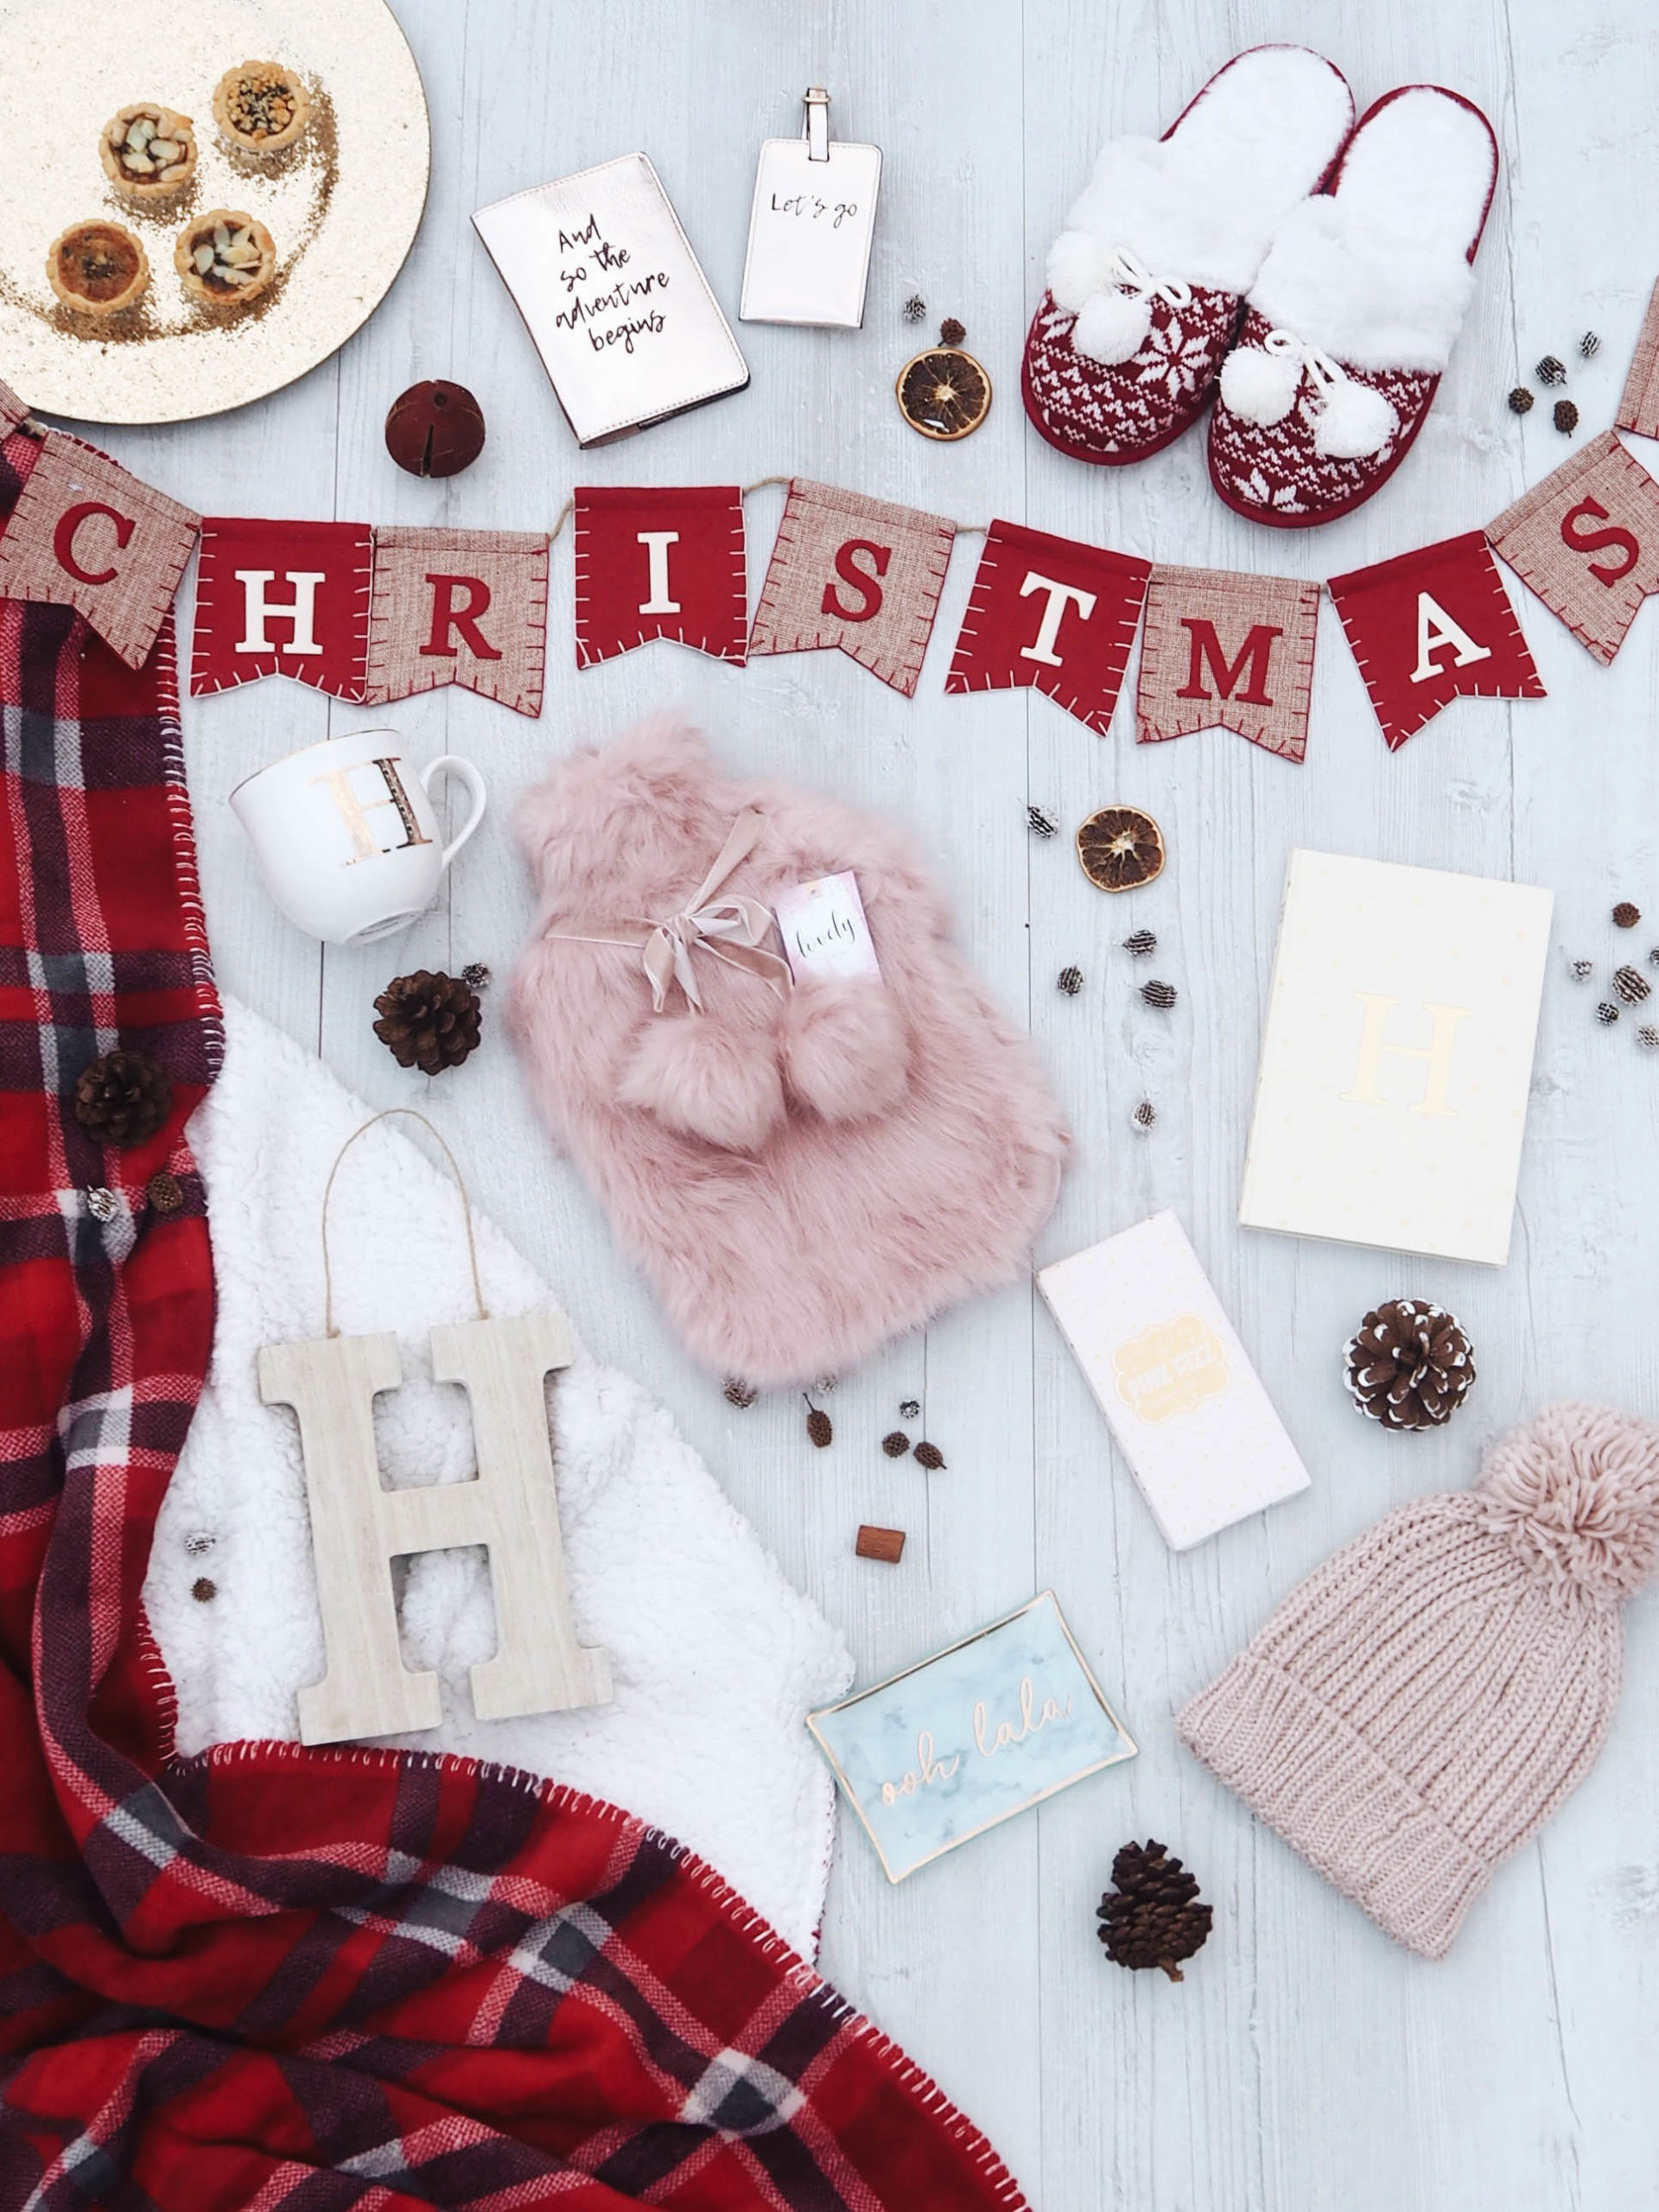 15 Christmas Gifts Under £15 From Matalan That You NEED To Know About